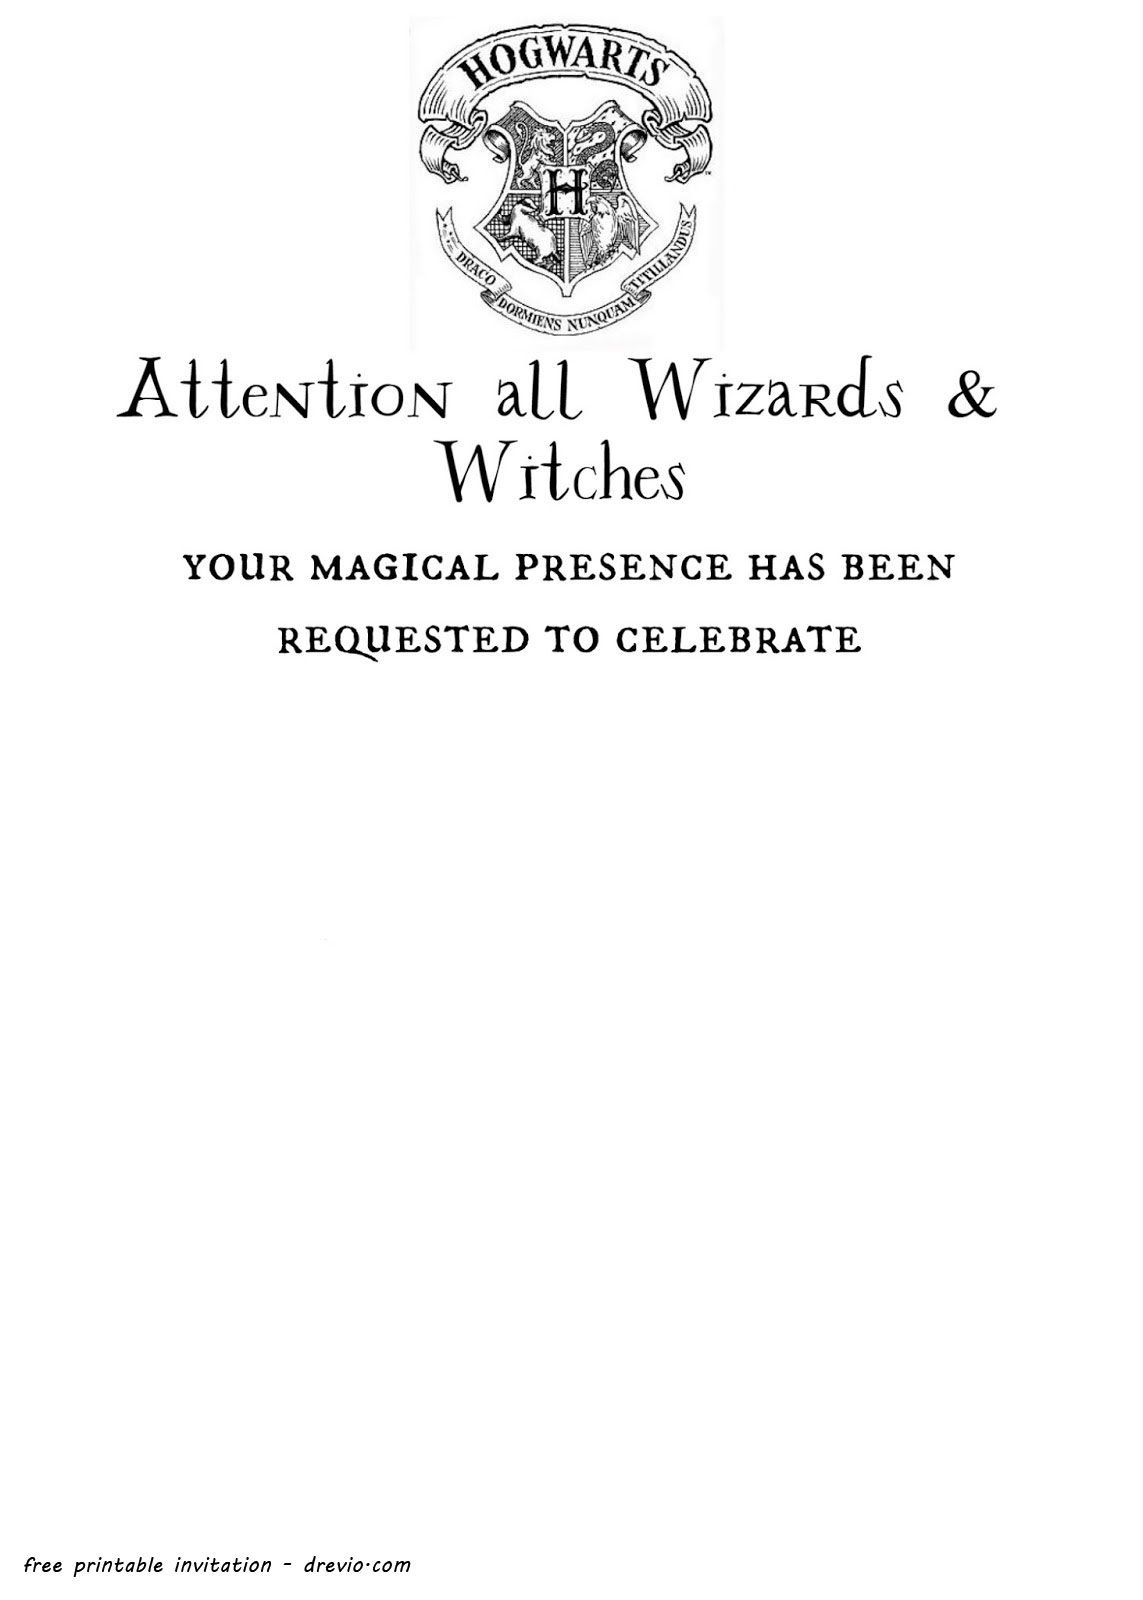 Free Printable Harry Potter - Hogwarts Invitation Template | Harry - Harry Potter Birthday Invitations Free Printable